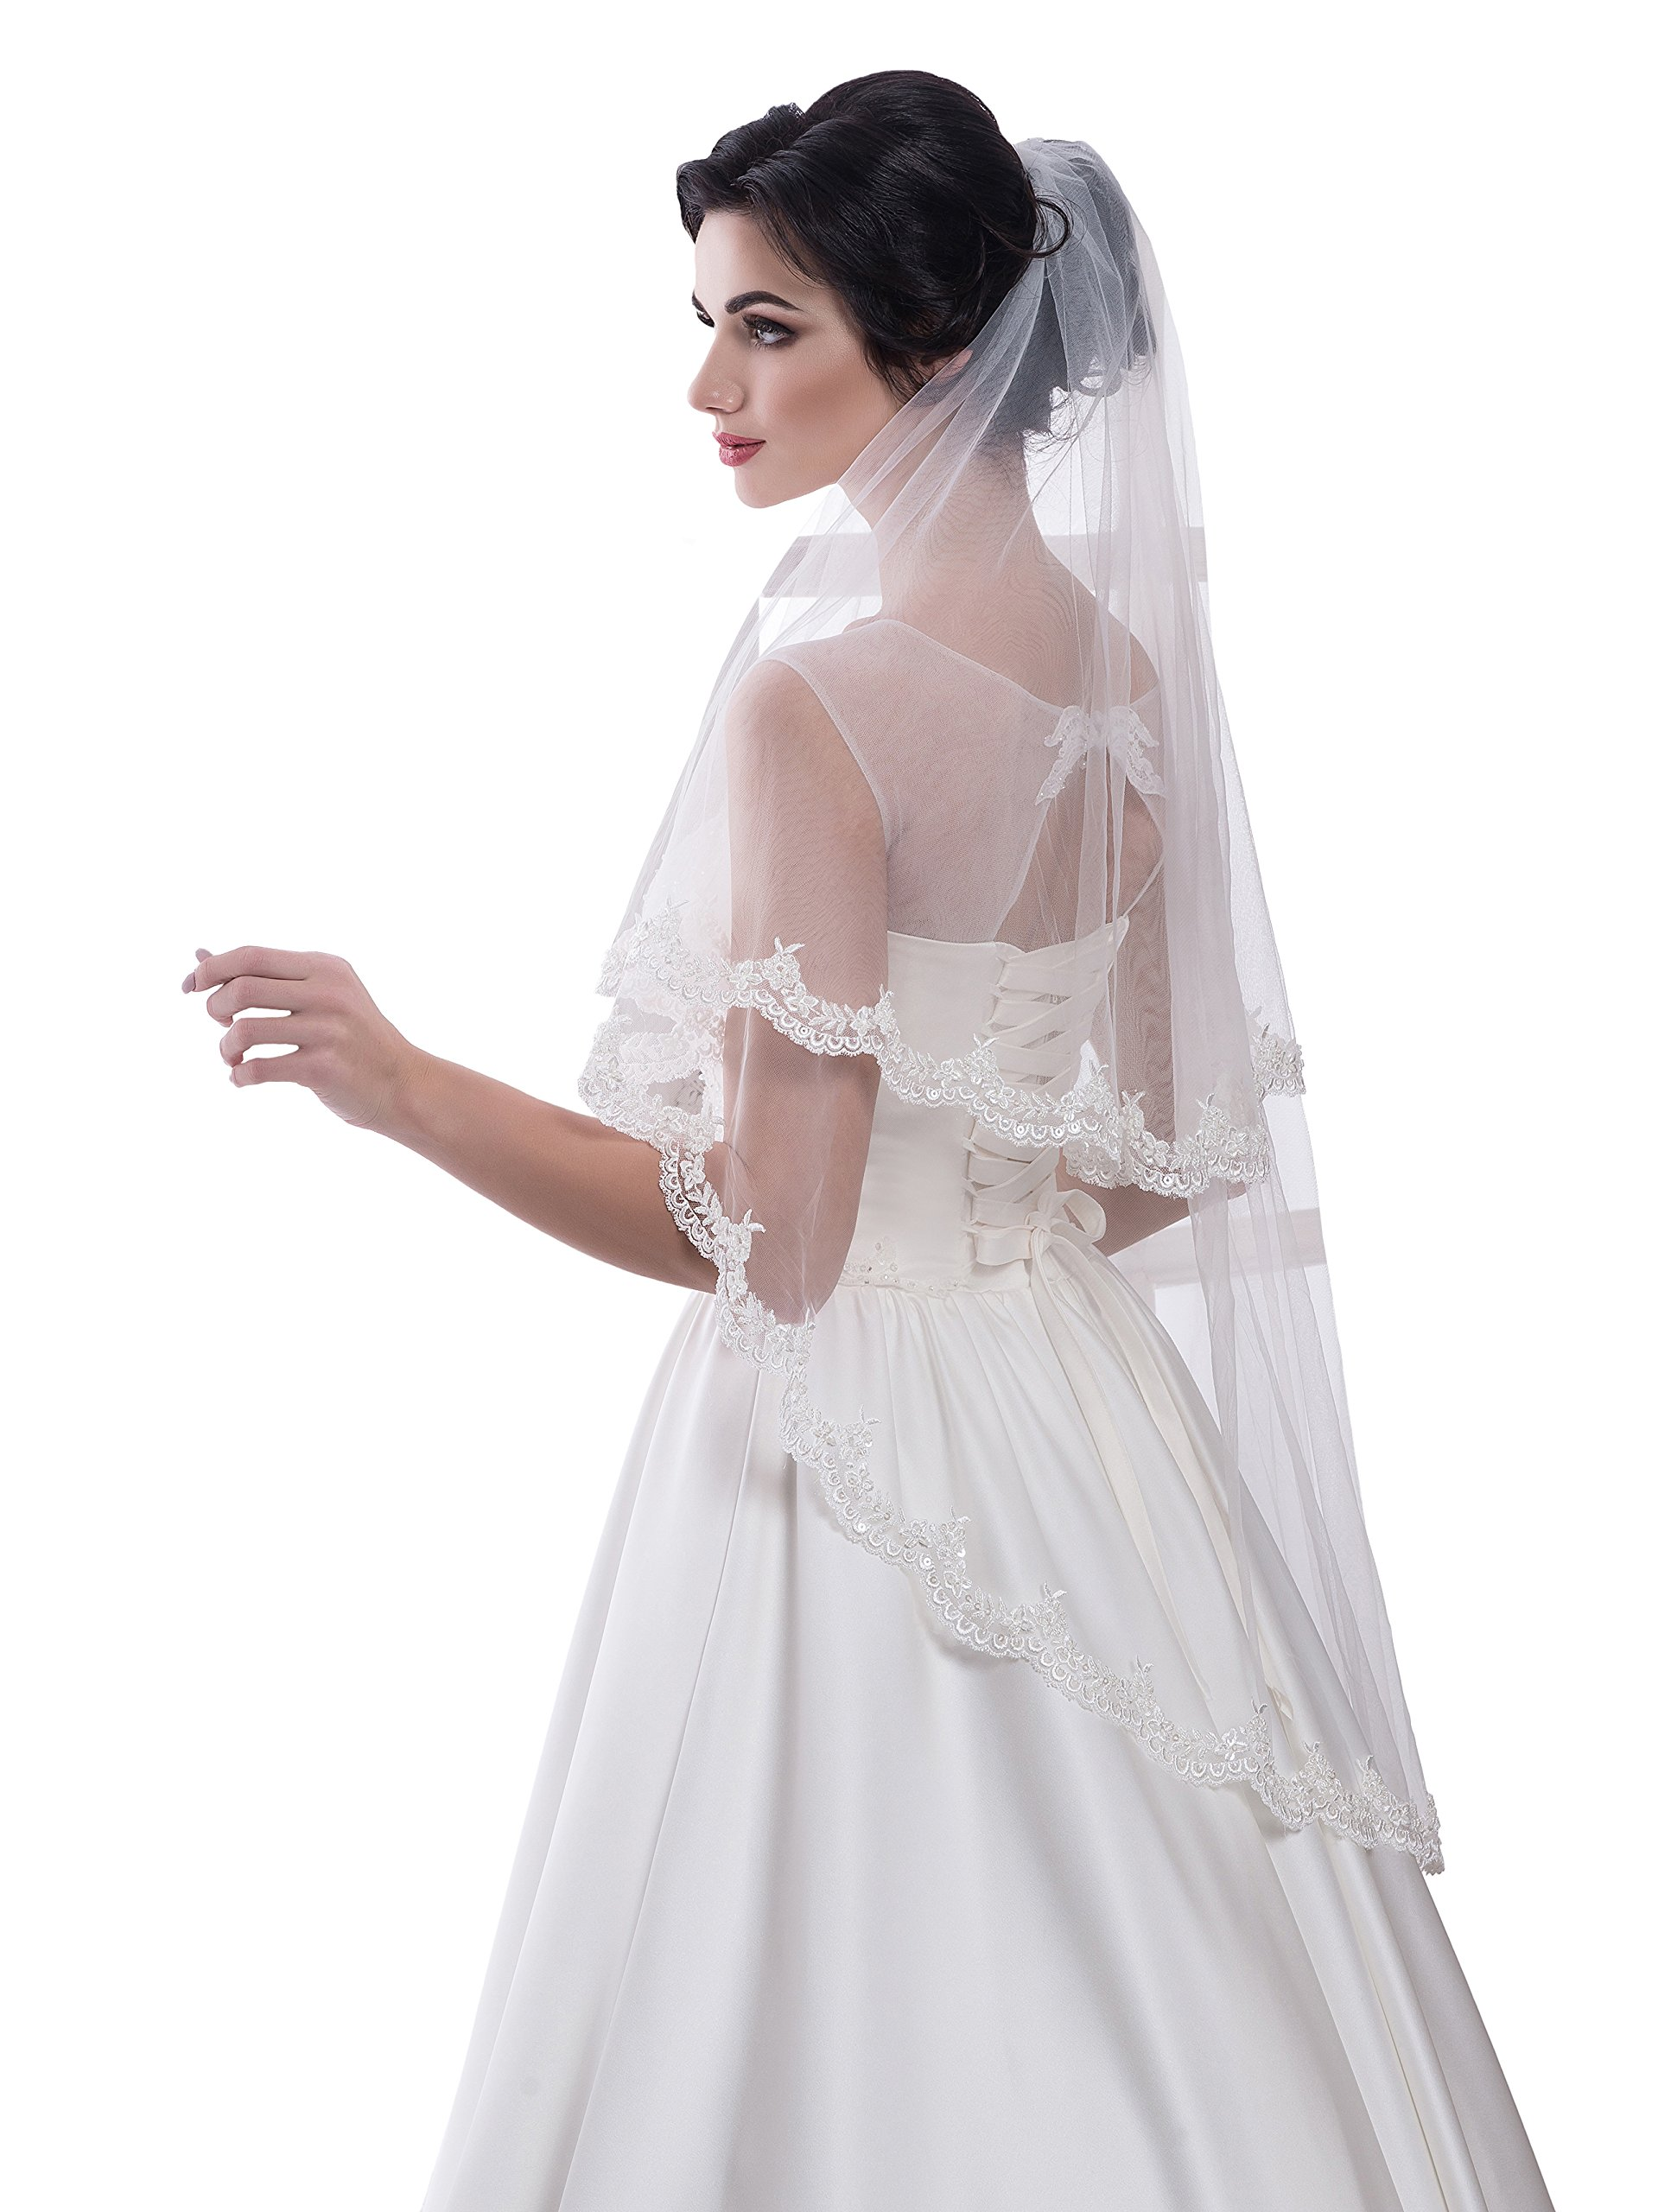 Bridal Veil Betty from NYC Bride collection (short 30'', white)